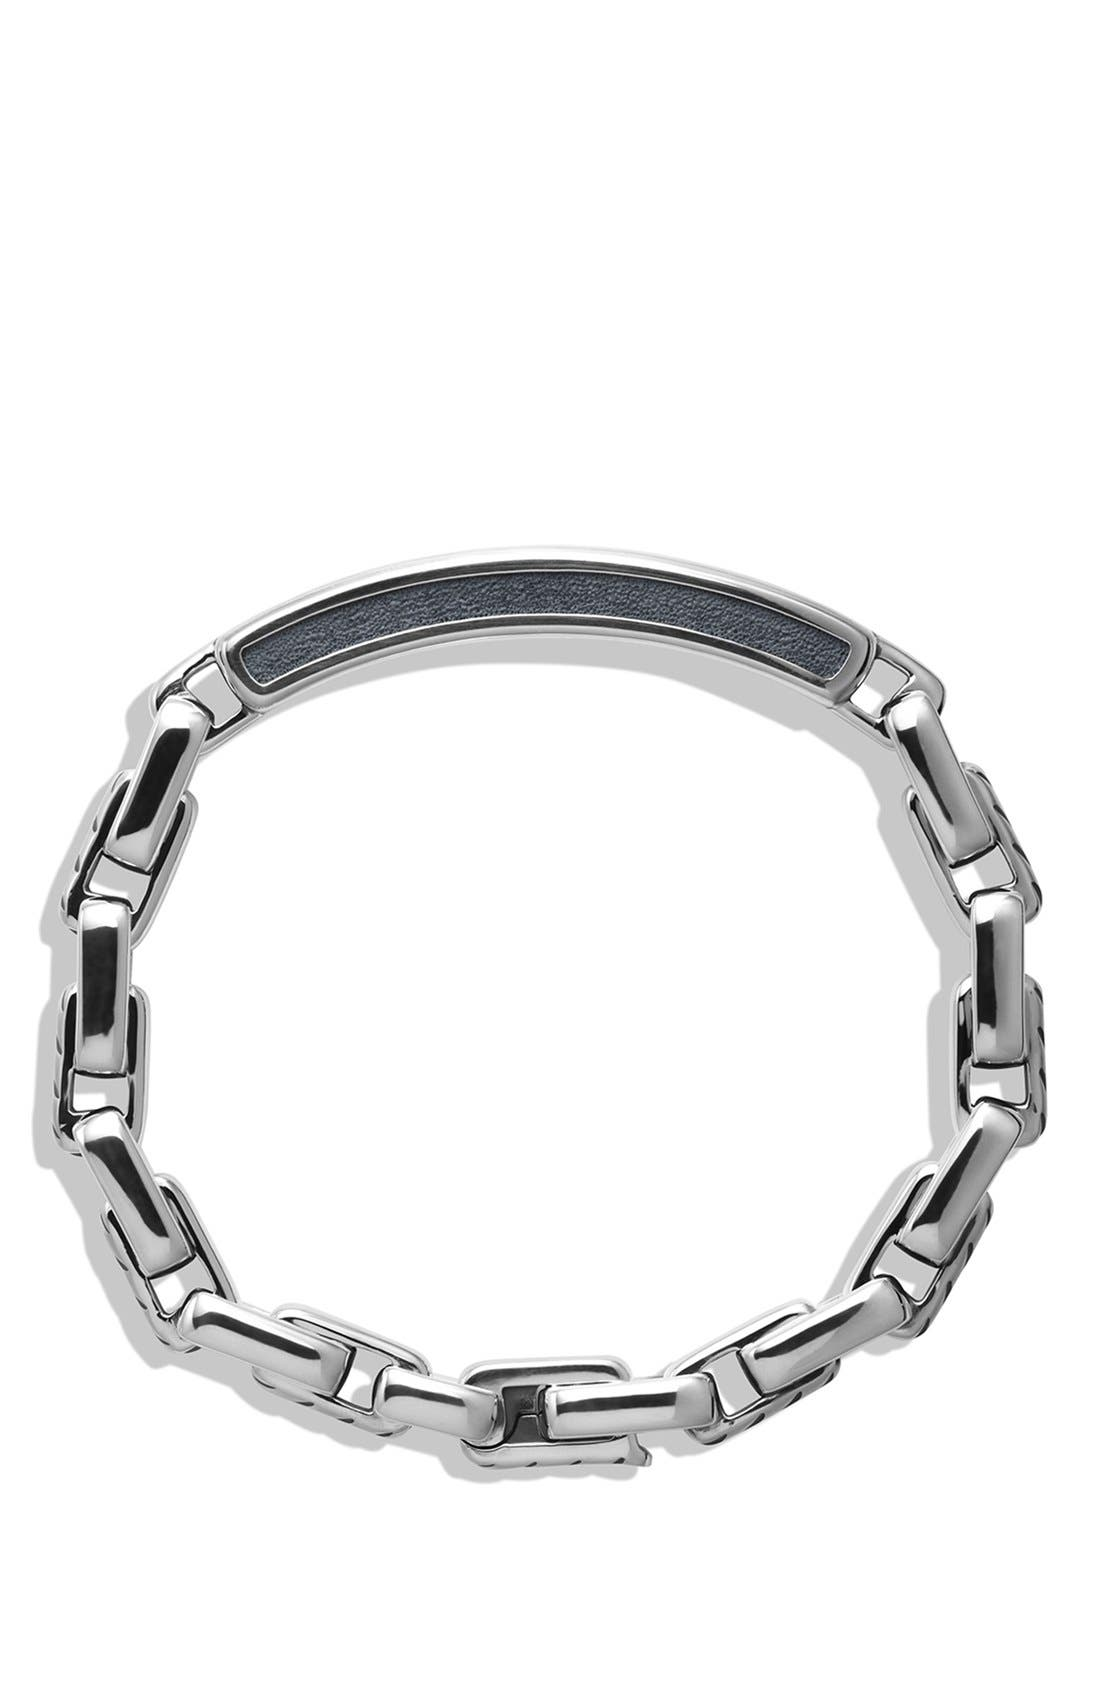 Alternate Image 2  - David Yurman 'Modern Cable' ID Bracelet